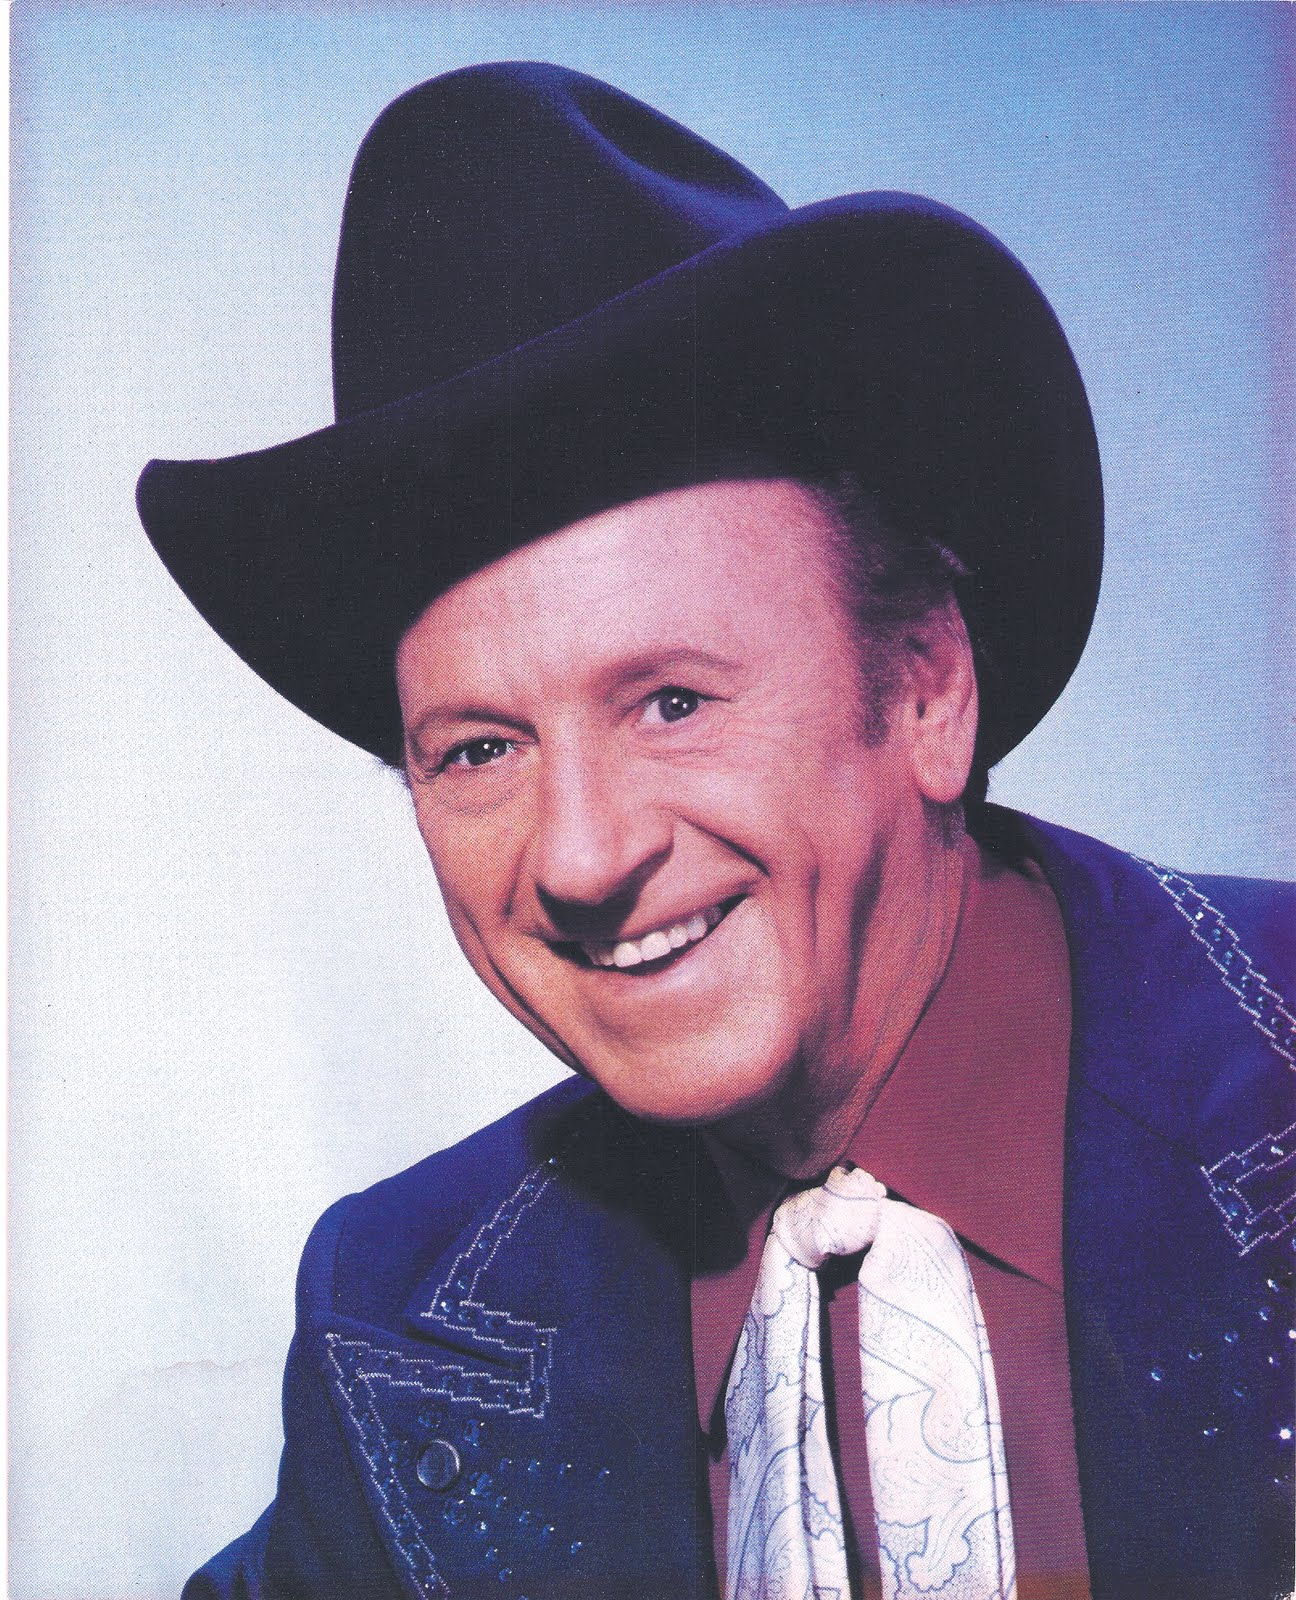 Friend and mentor dies | Nashville Country Music Scene